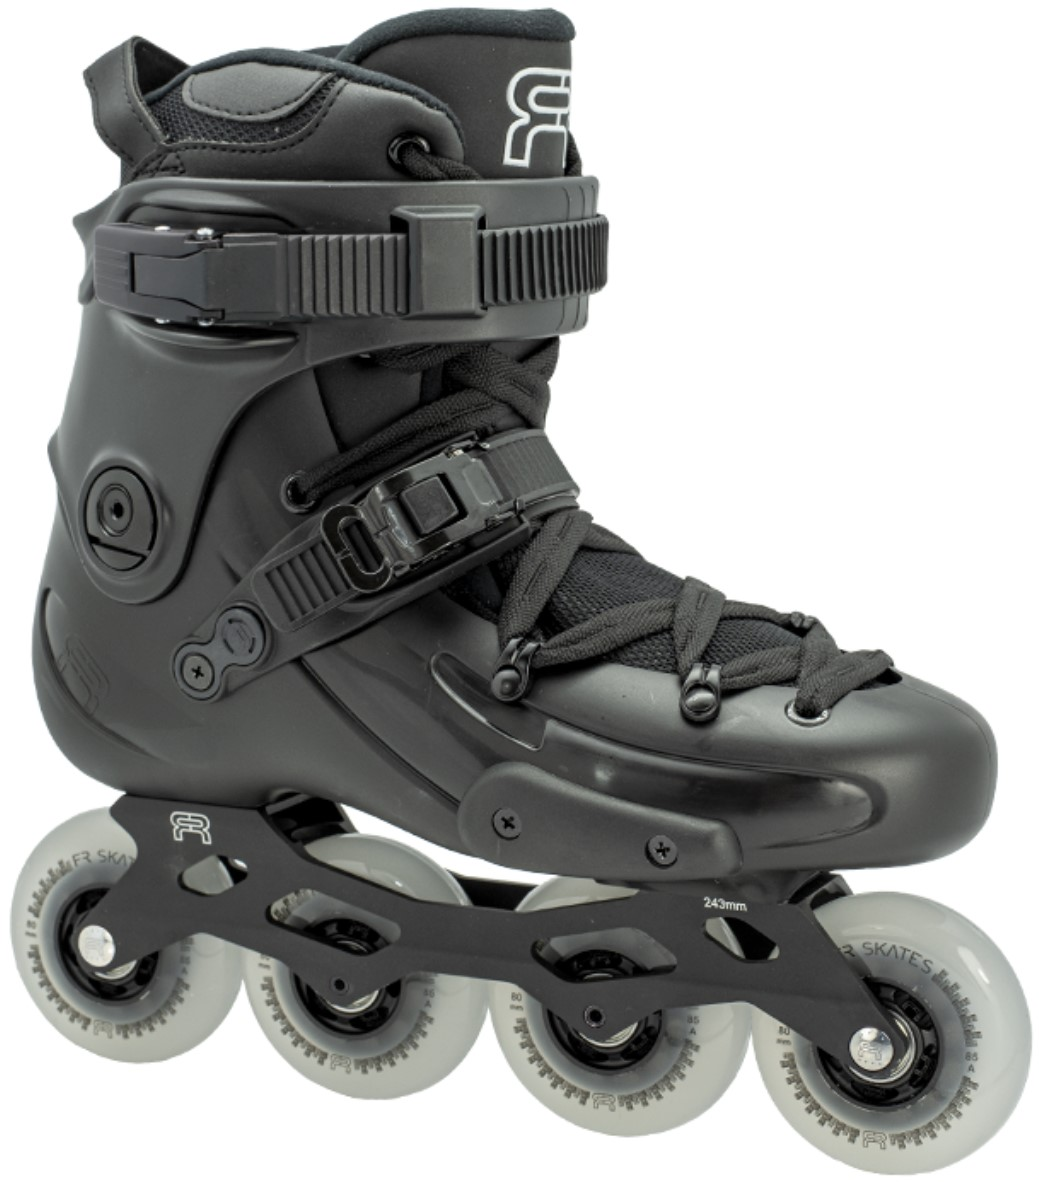 FR2 inline skate with 80 mm wheels